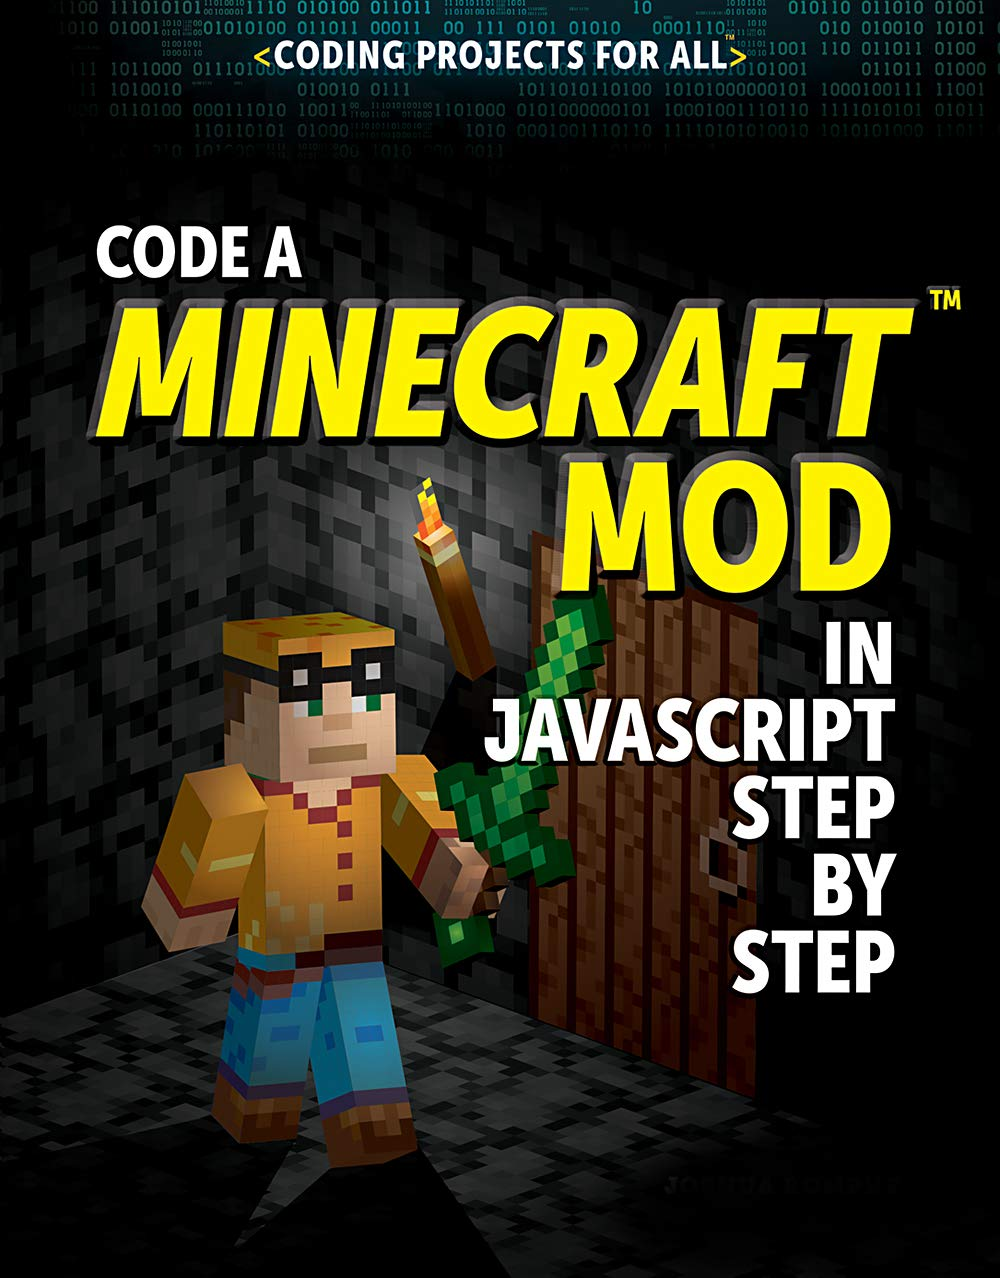 Code a Minecraft Mod in JavaScript Step by Step (Coding